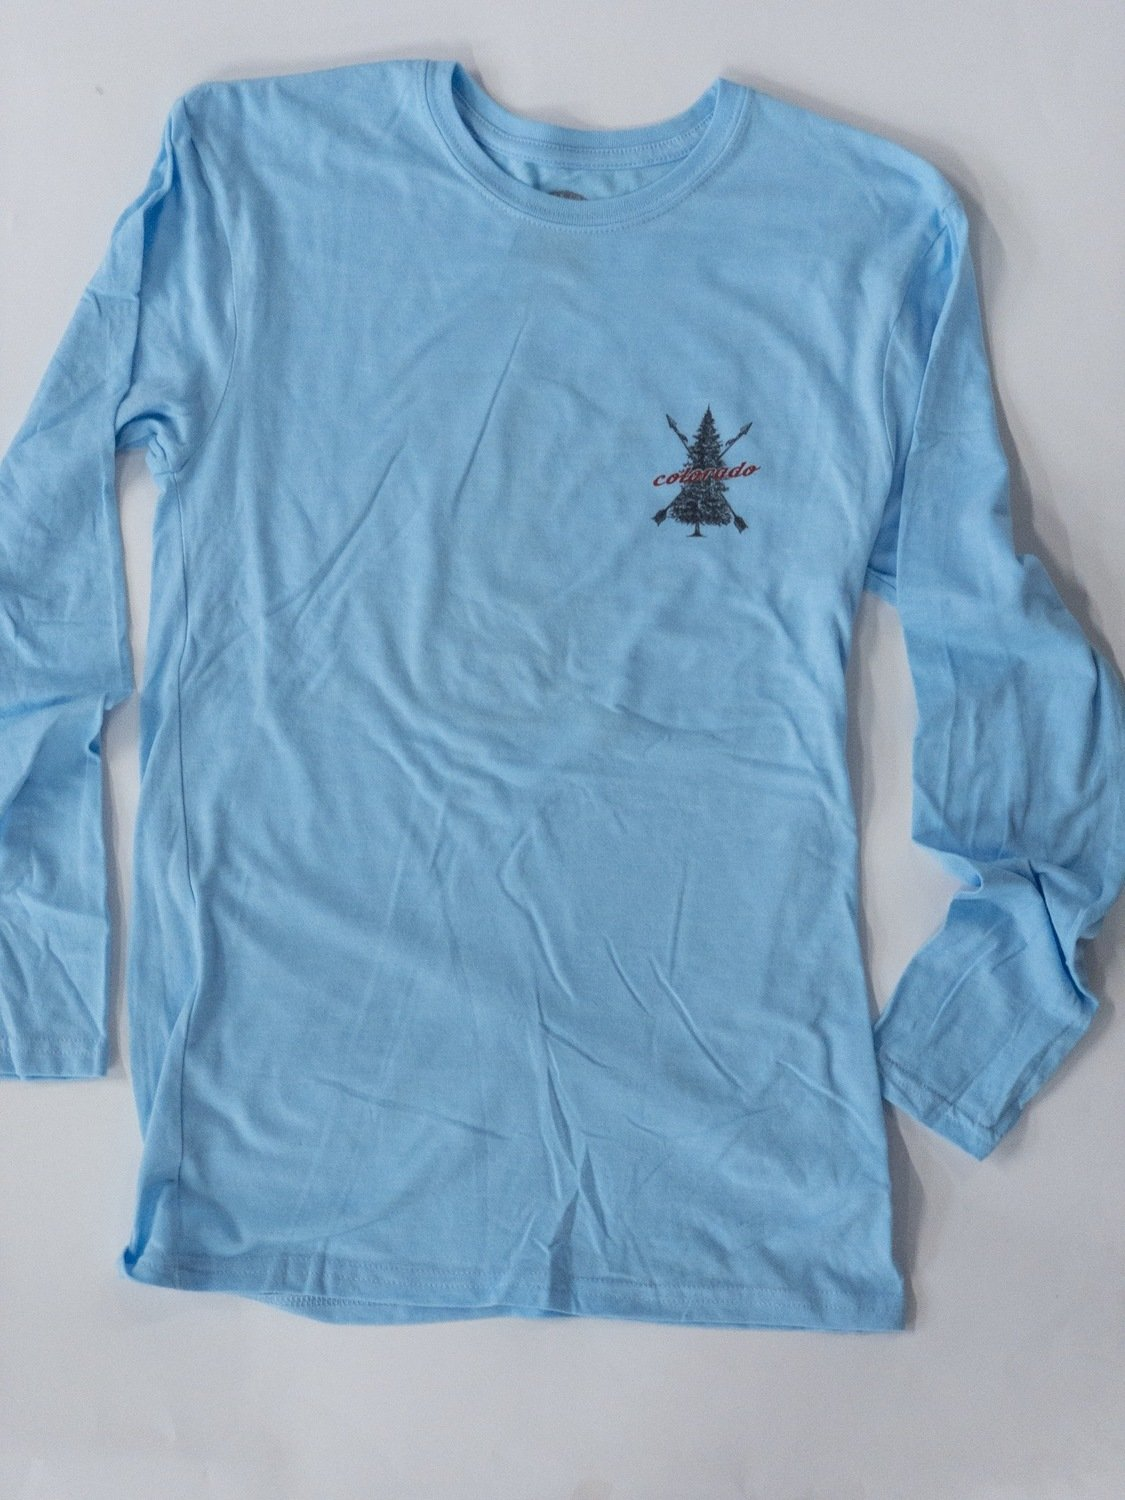 Blue Colorado Tree T-shirt